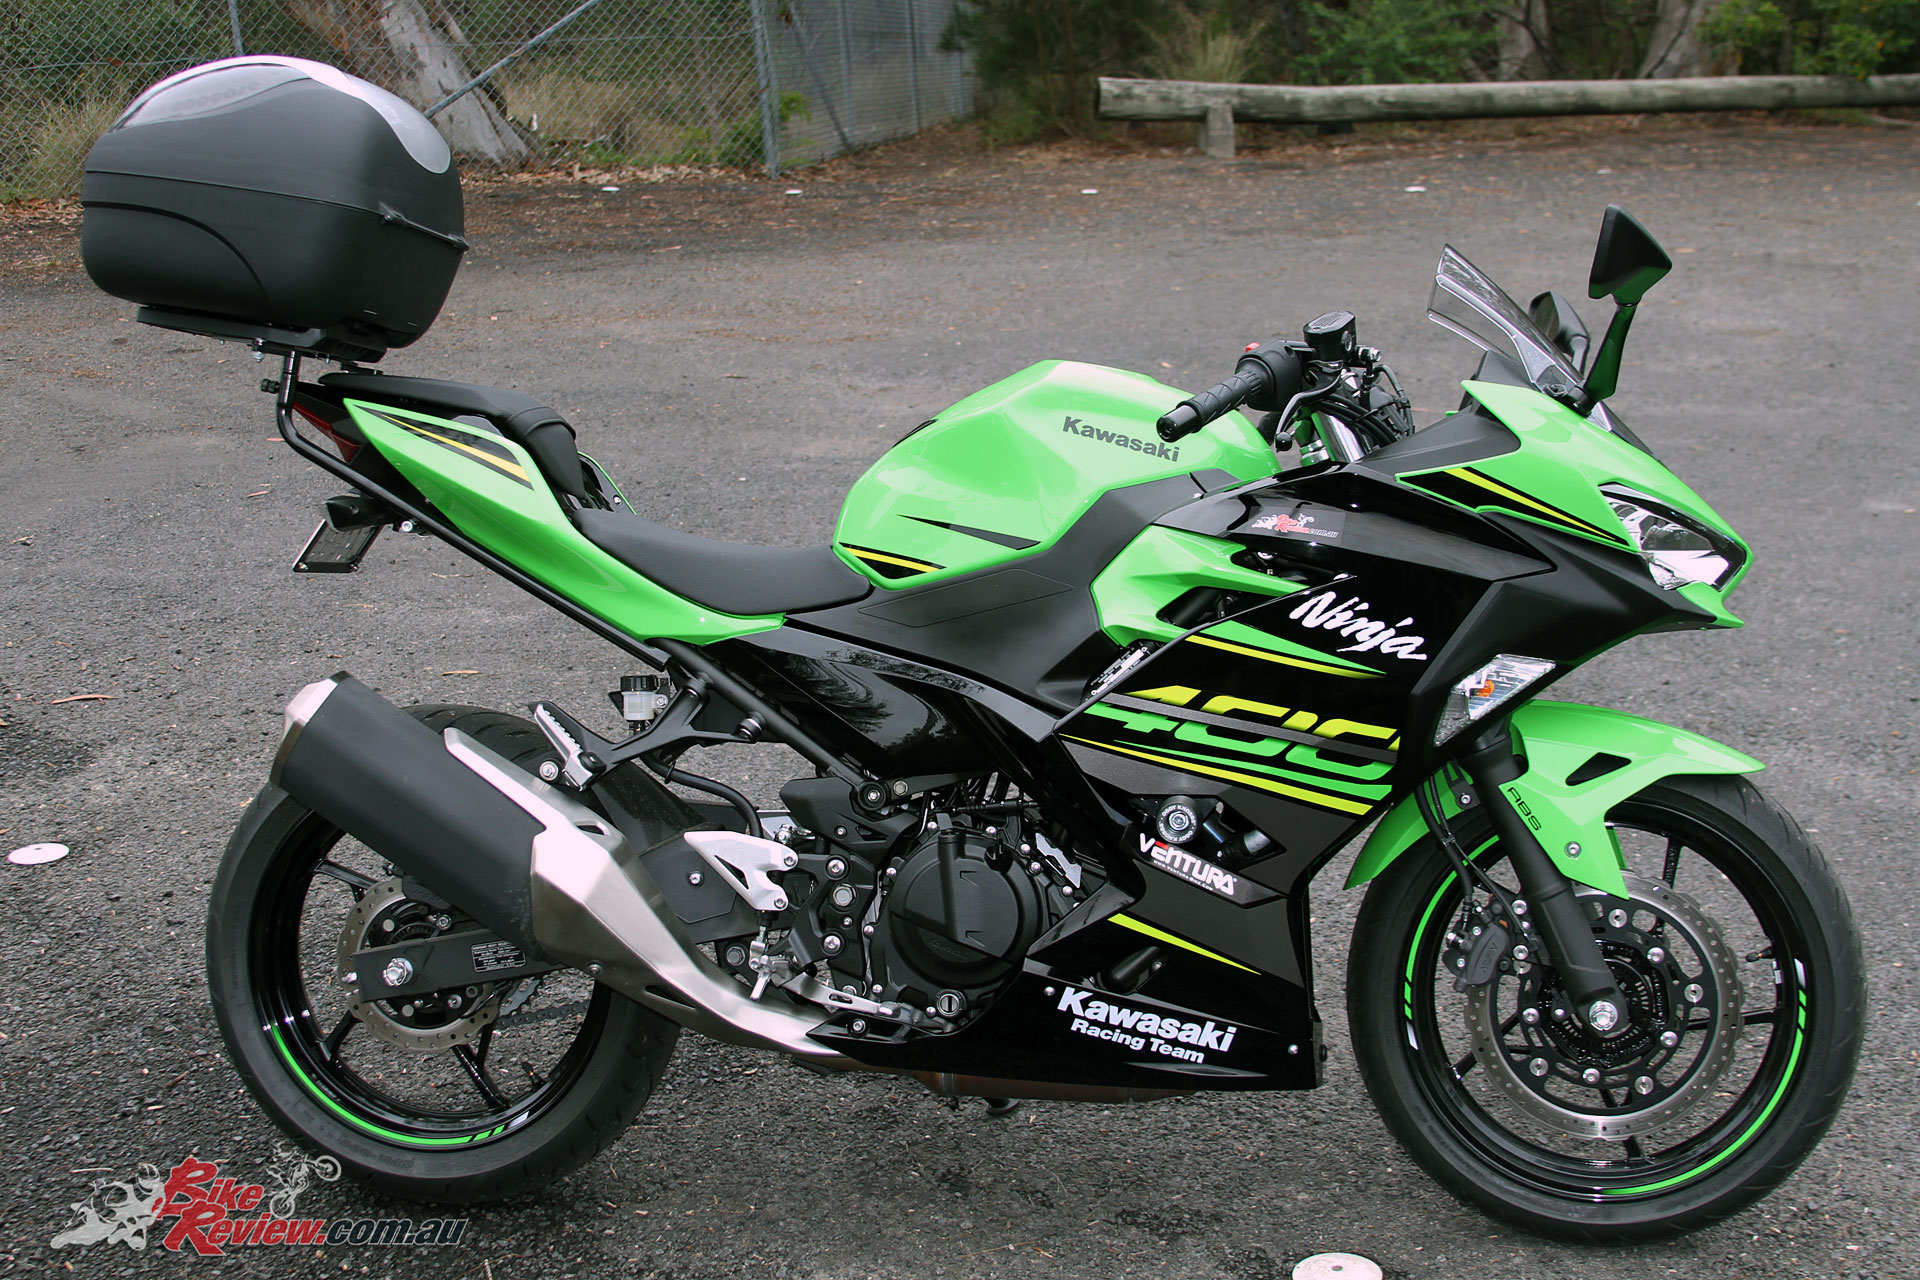 Our Long Term Ninja 400, now kitted out with Ventura rack, Coocase 36L Wizard top box, Oggy Fender Eliminator and in desperate need of an exhaust!